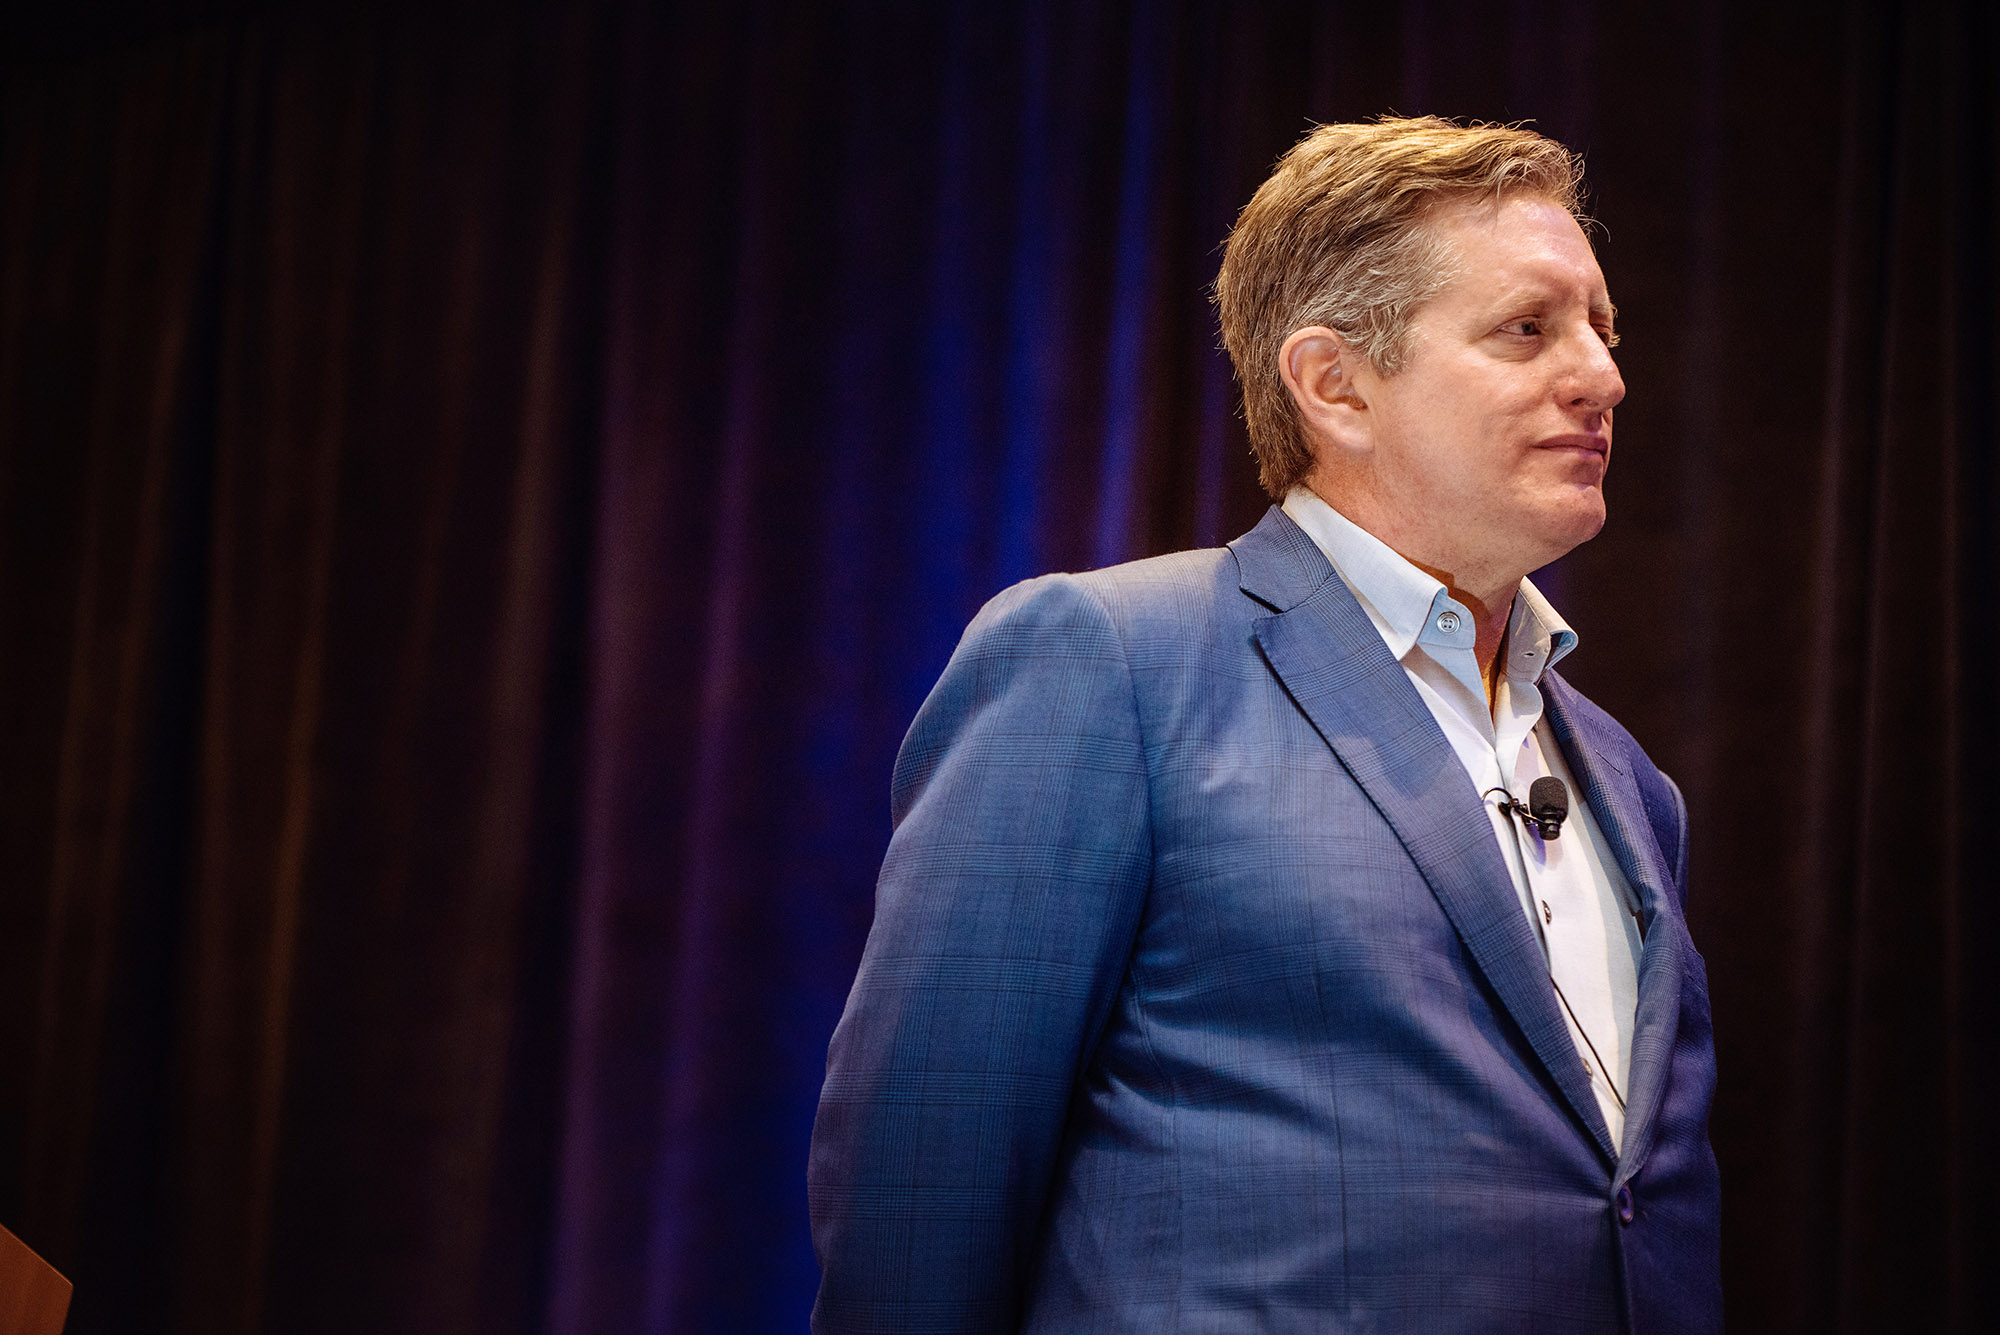 Event photography at the Eden Roc in Miami with guest speaker; Steve Eisman - 'big short' investor who bet on the crash.